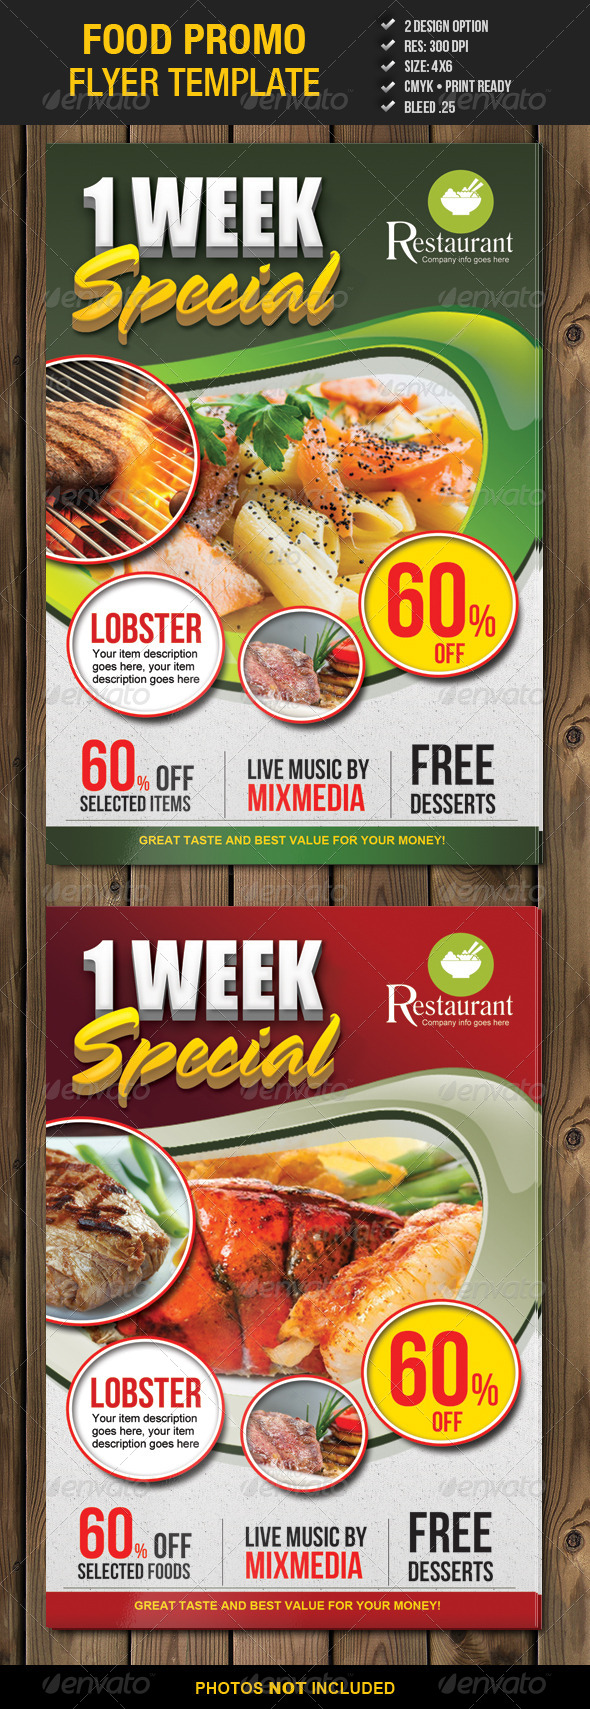 GraphicRiver Food Promo Flyer Template 2 4453782